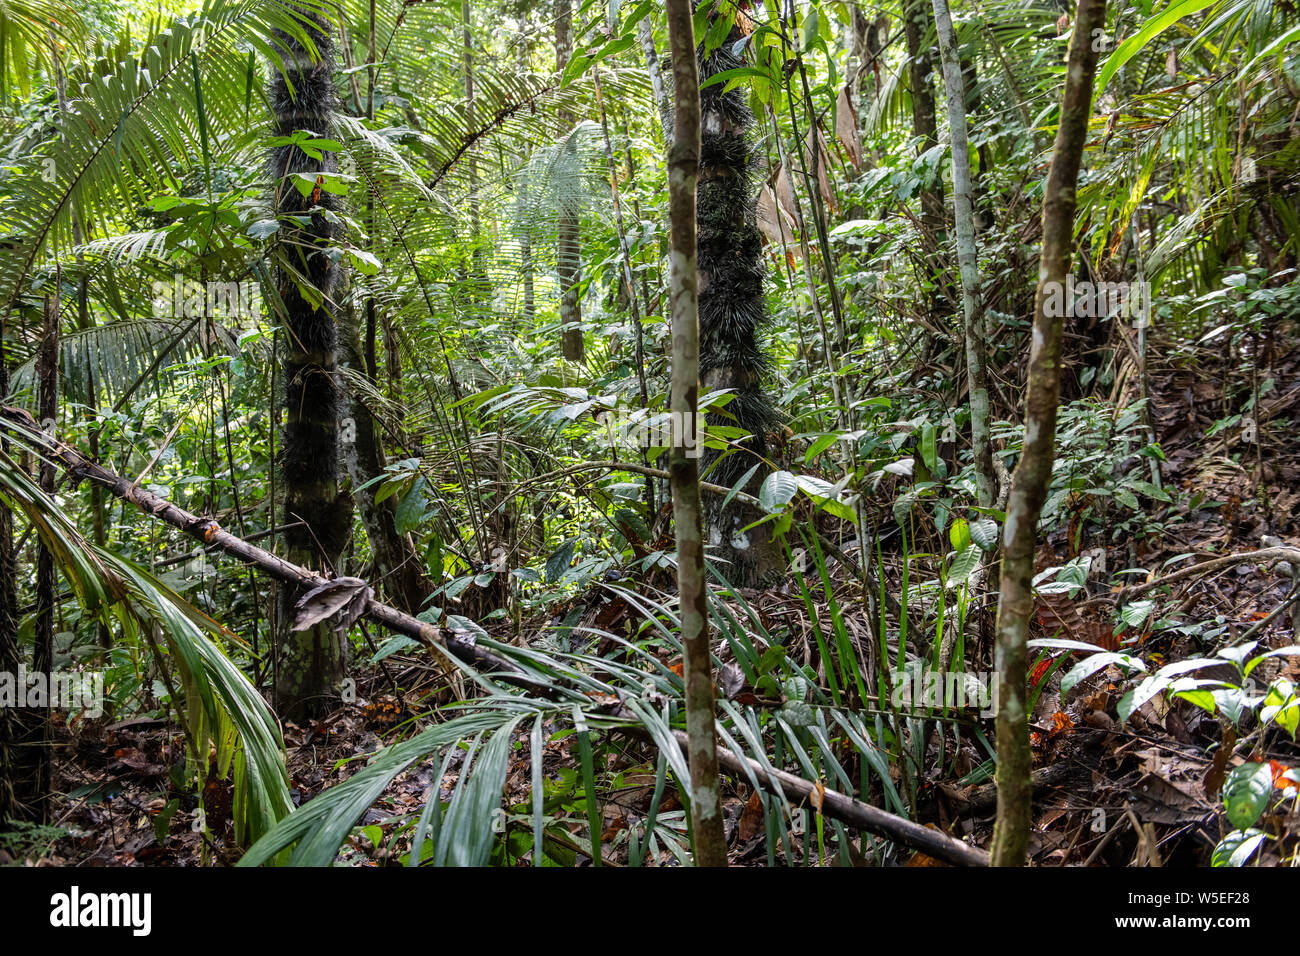 Find the perfect equatorial forest stock photo. Equatorial Forest High Resolution Stock Photography And Images Alamy